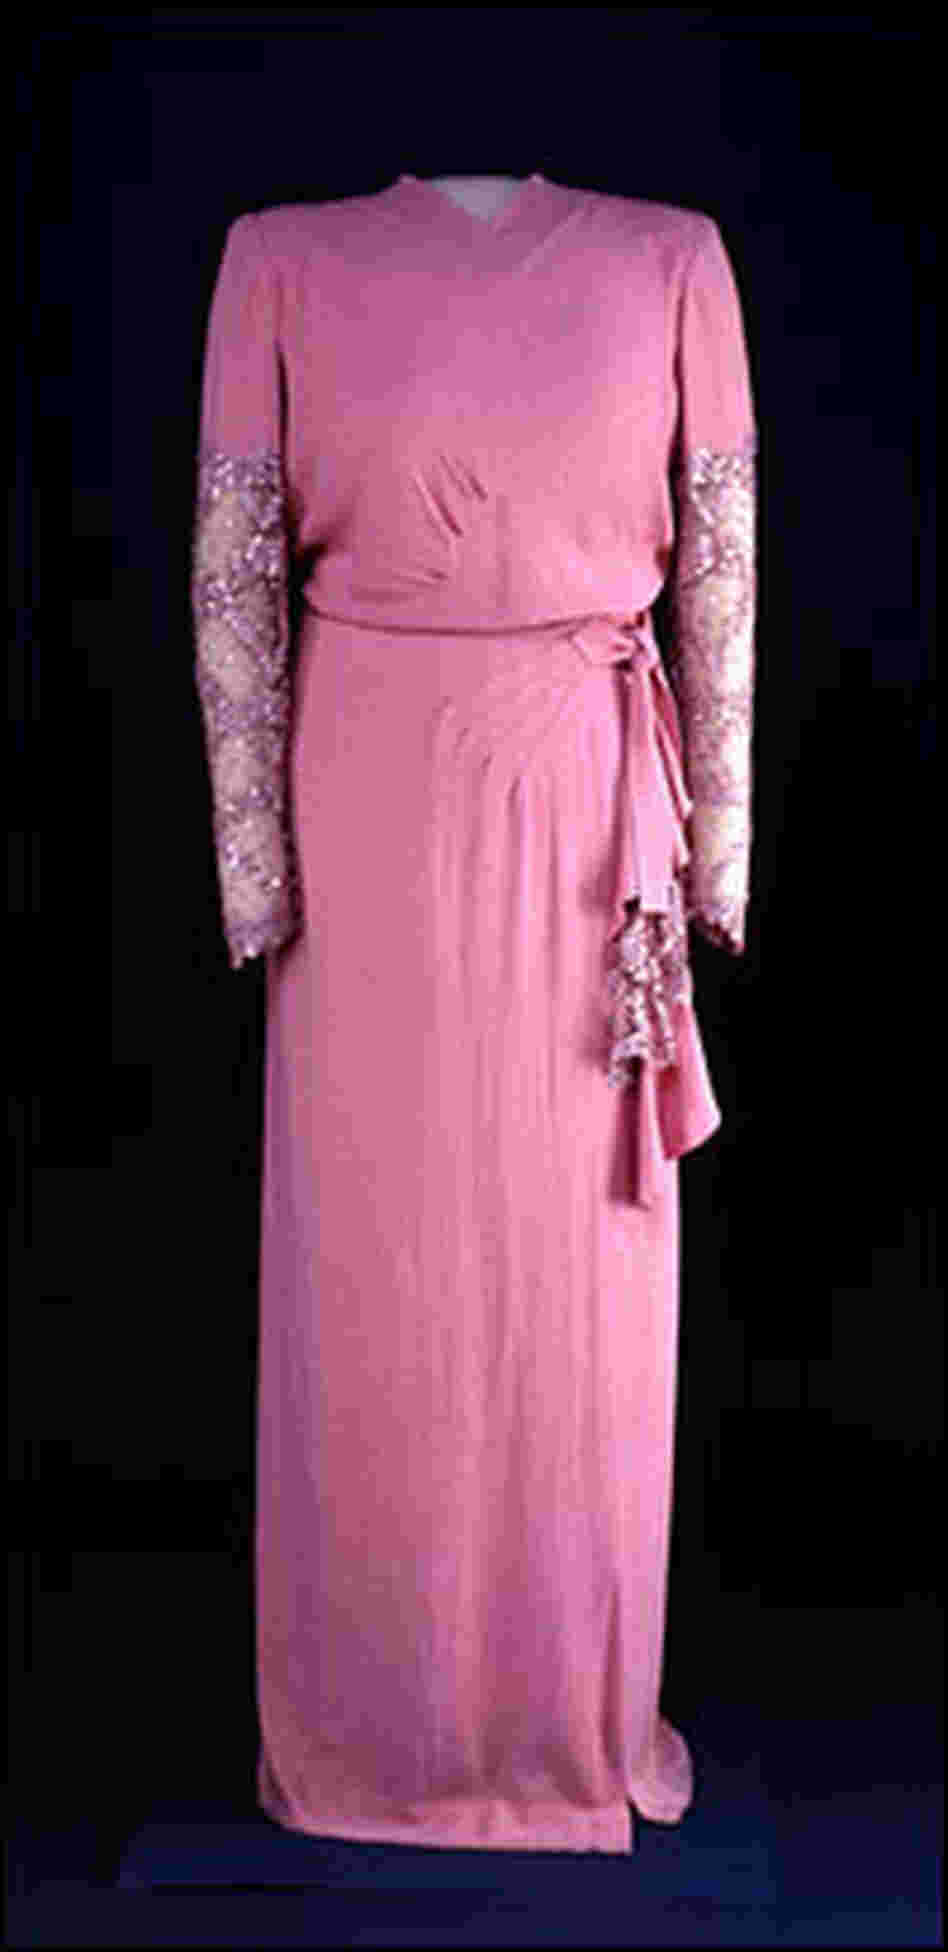 Eleanor Roosevelt's 1945 inaugural reception gown.